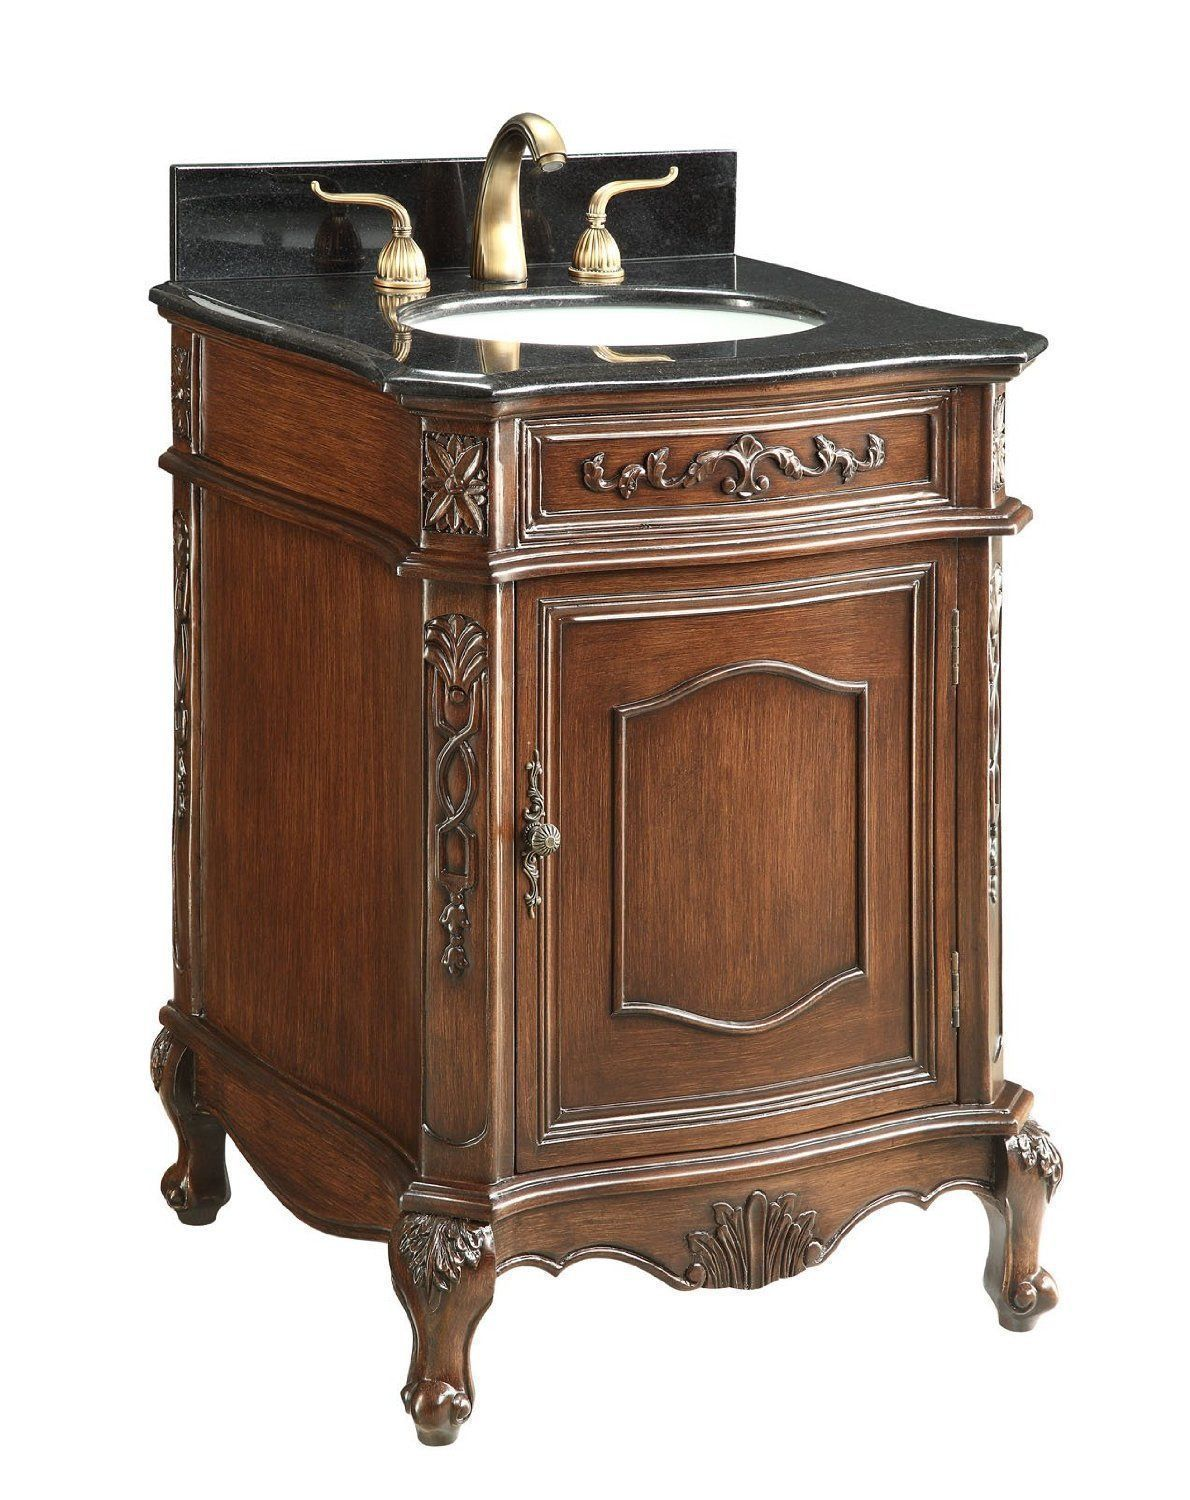 24 inch Adelina Antique Bathroom Vanity Black Granite Top